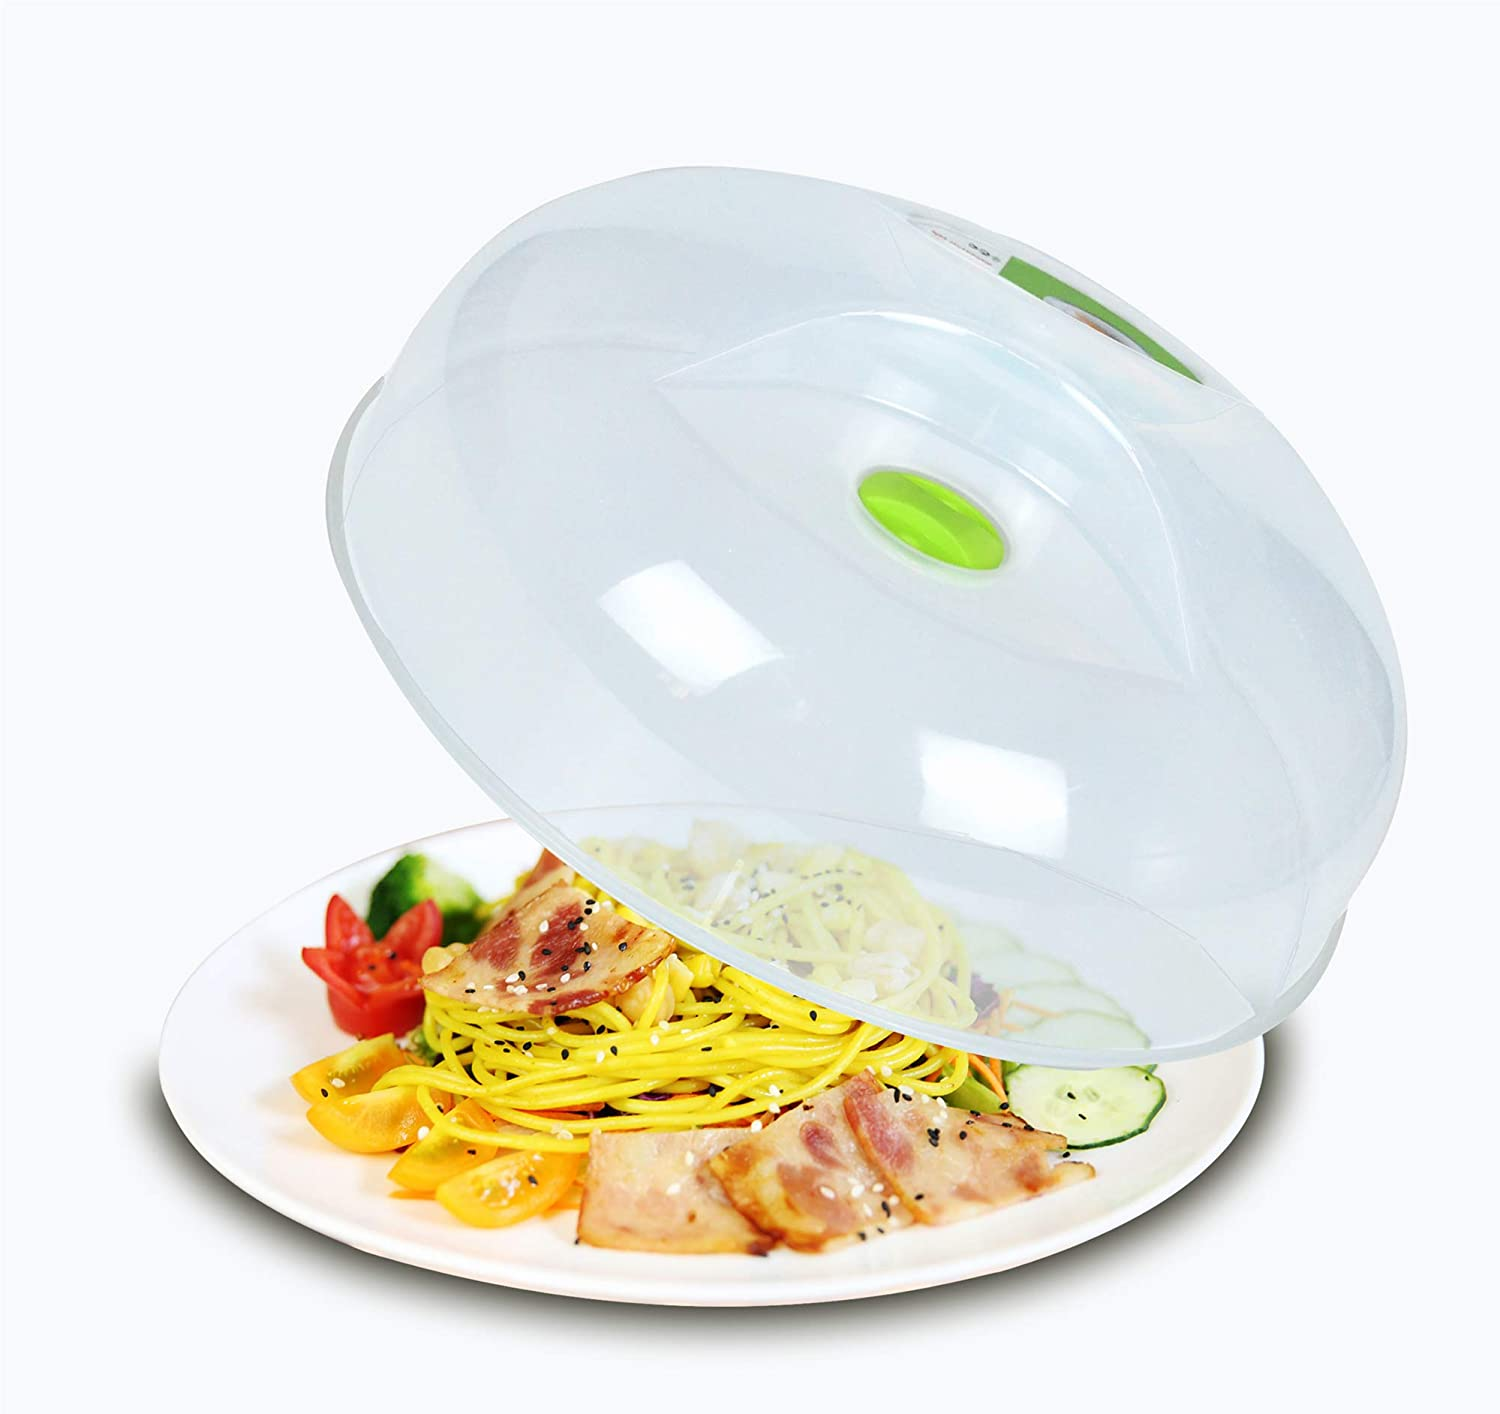 Microwave Splatter Cover for Food Plate Cover Guard Lid With Steam Vent and BPA Free 11.5 Inch,Dishwasher Safe